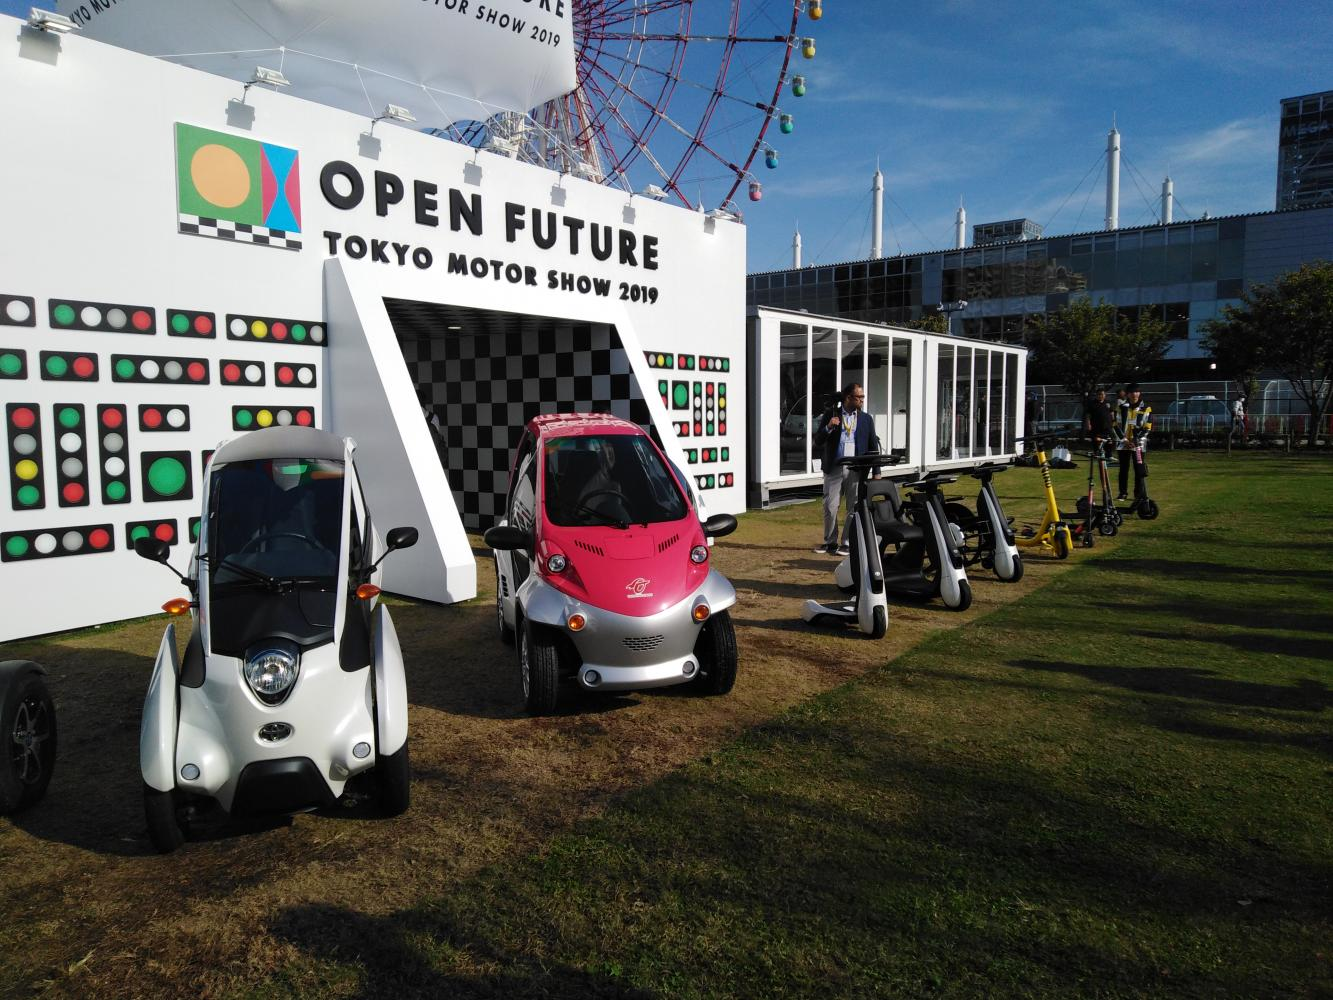 Toyota electric mobility products are parked for public test drives at the Tokyo Motor Show. (Photo by Piyachart Maikaew)